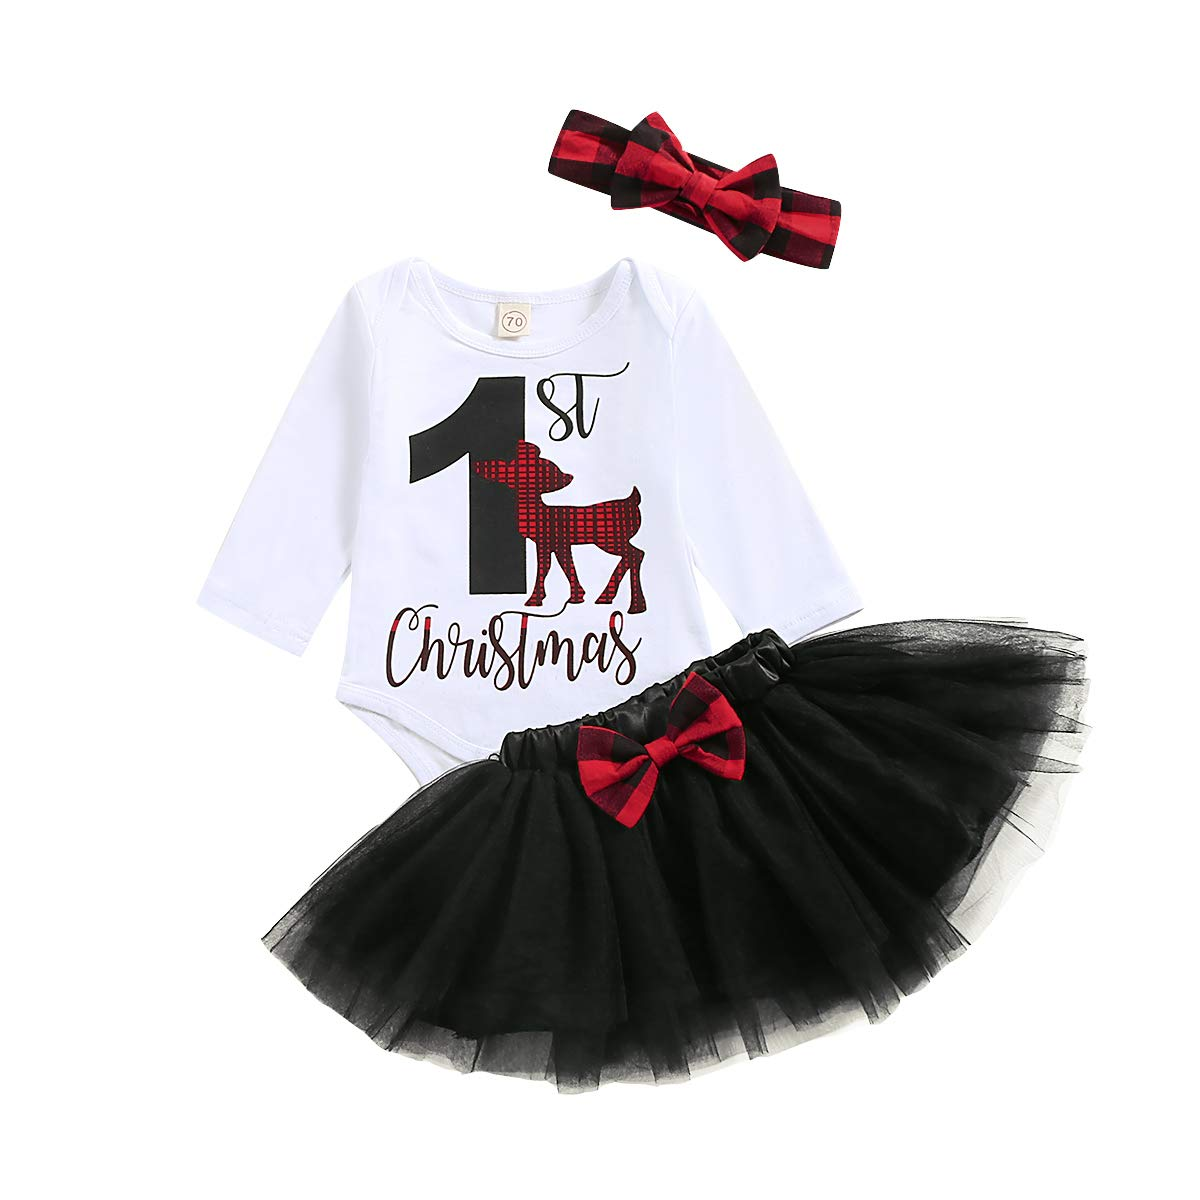 Infant Baby Girl Outfits Letter Print My 1st Christmas Romper + Red Plaid Headband+Bowknot Tutu Christmas 3pc Dress Set